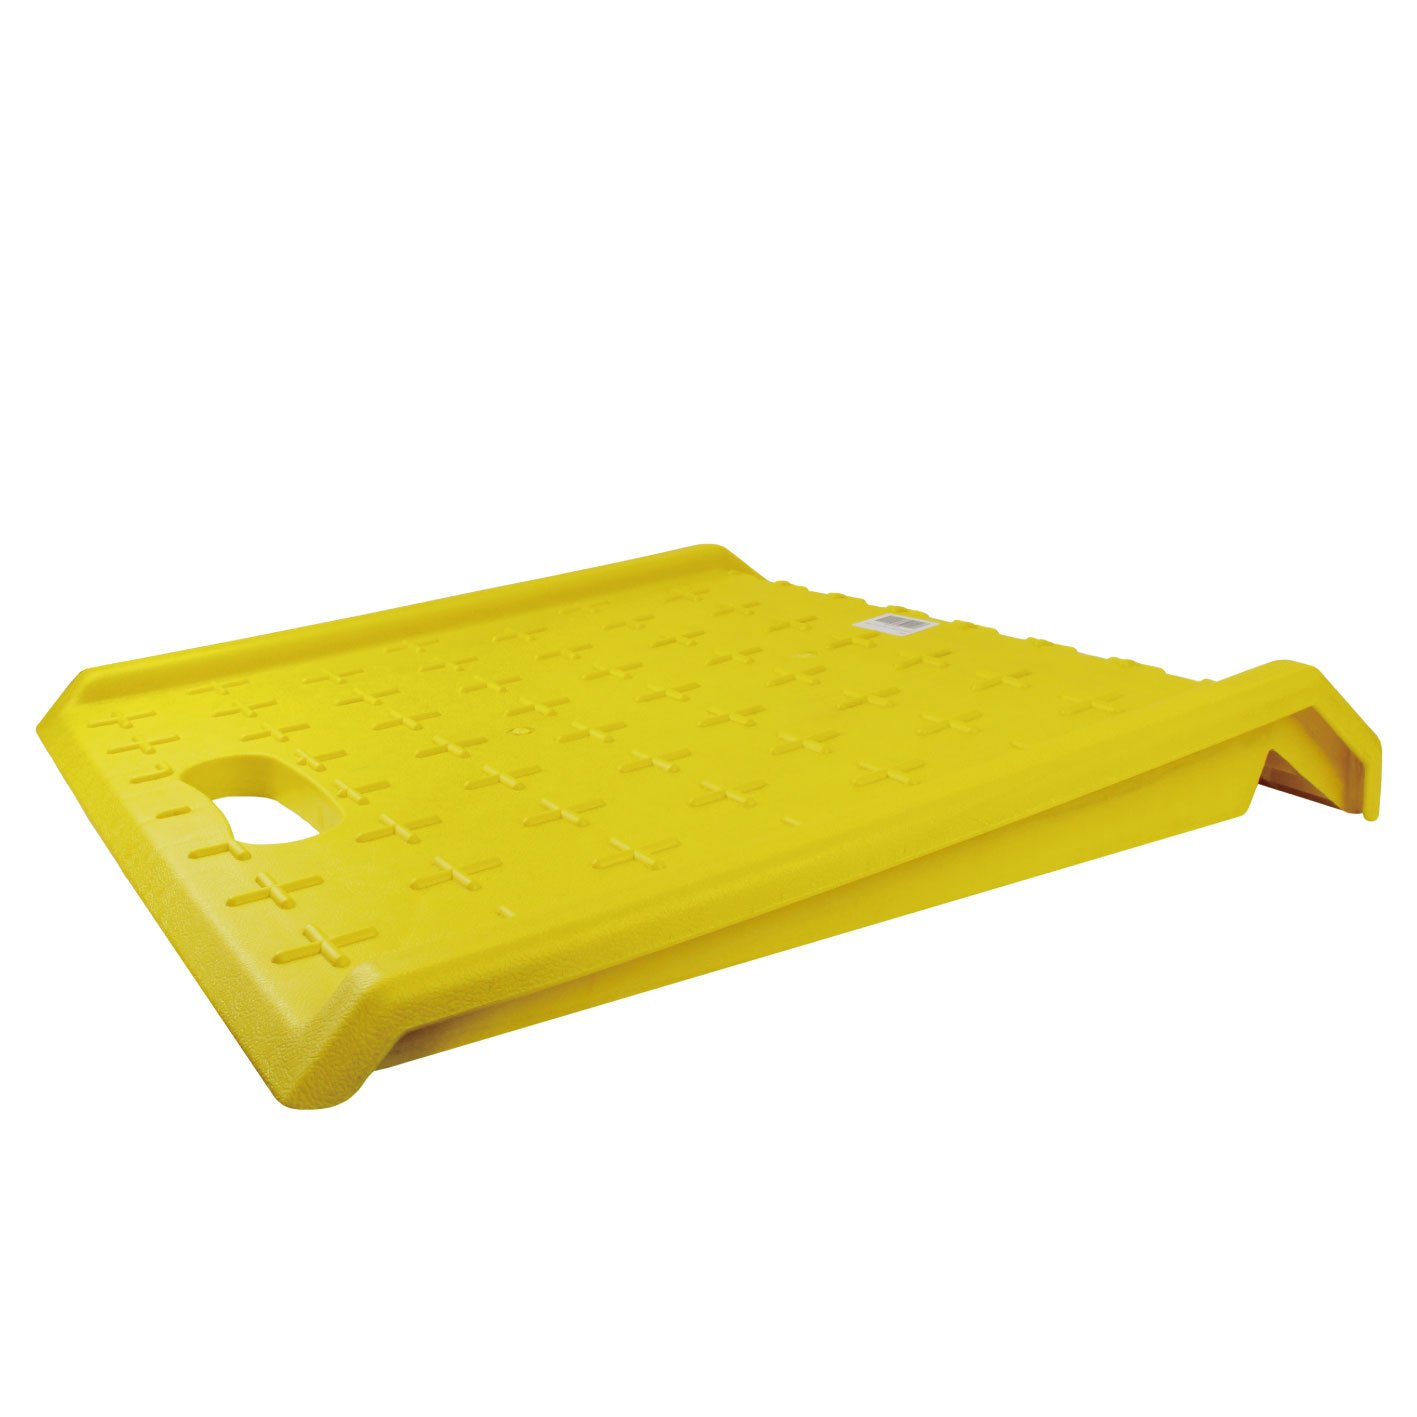 RK Safety RK-PCR27- Heavy Duty 1000 lbs Portable Curb Ramp for Hand Truck Delivery, Carts (Yellow)